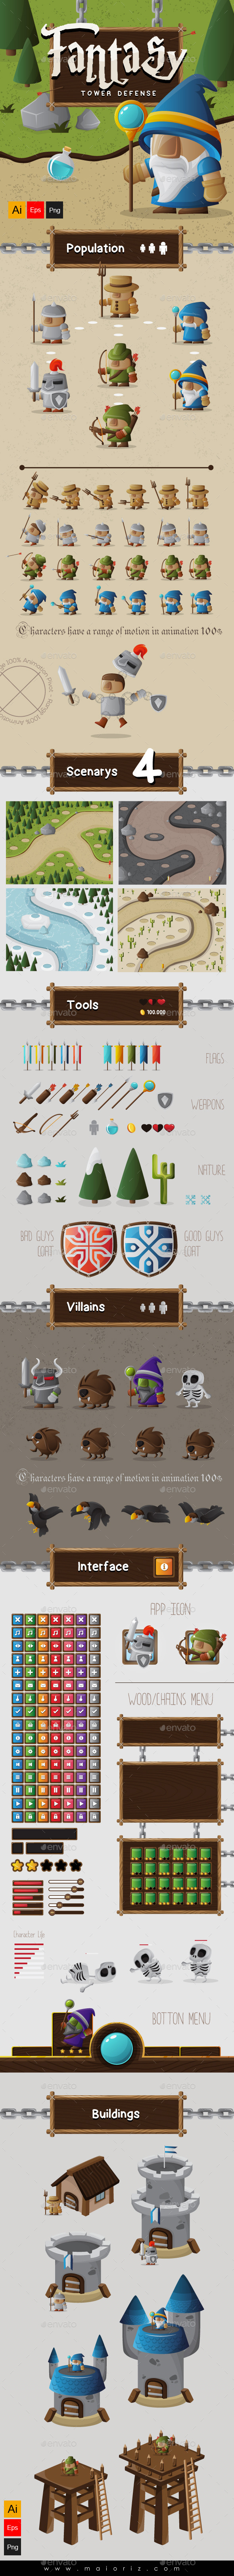 Fantasy Tower Defense Assets - Game Kits Game Assets